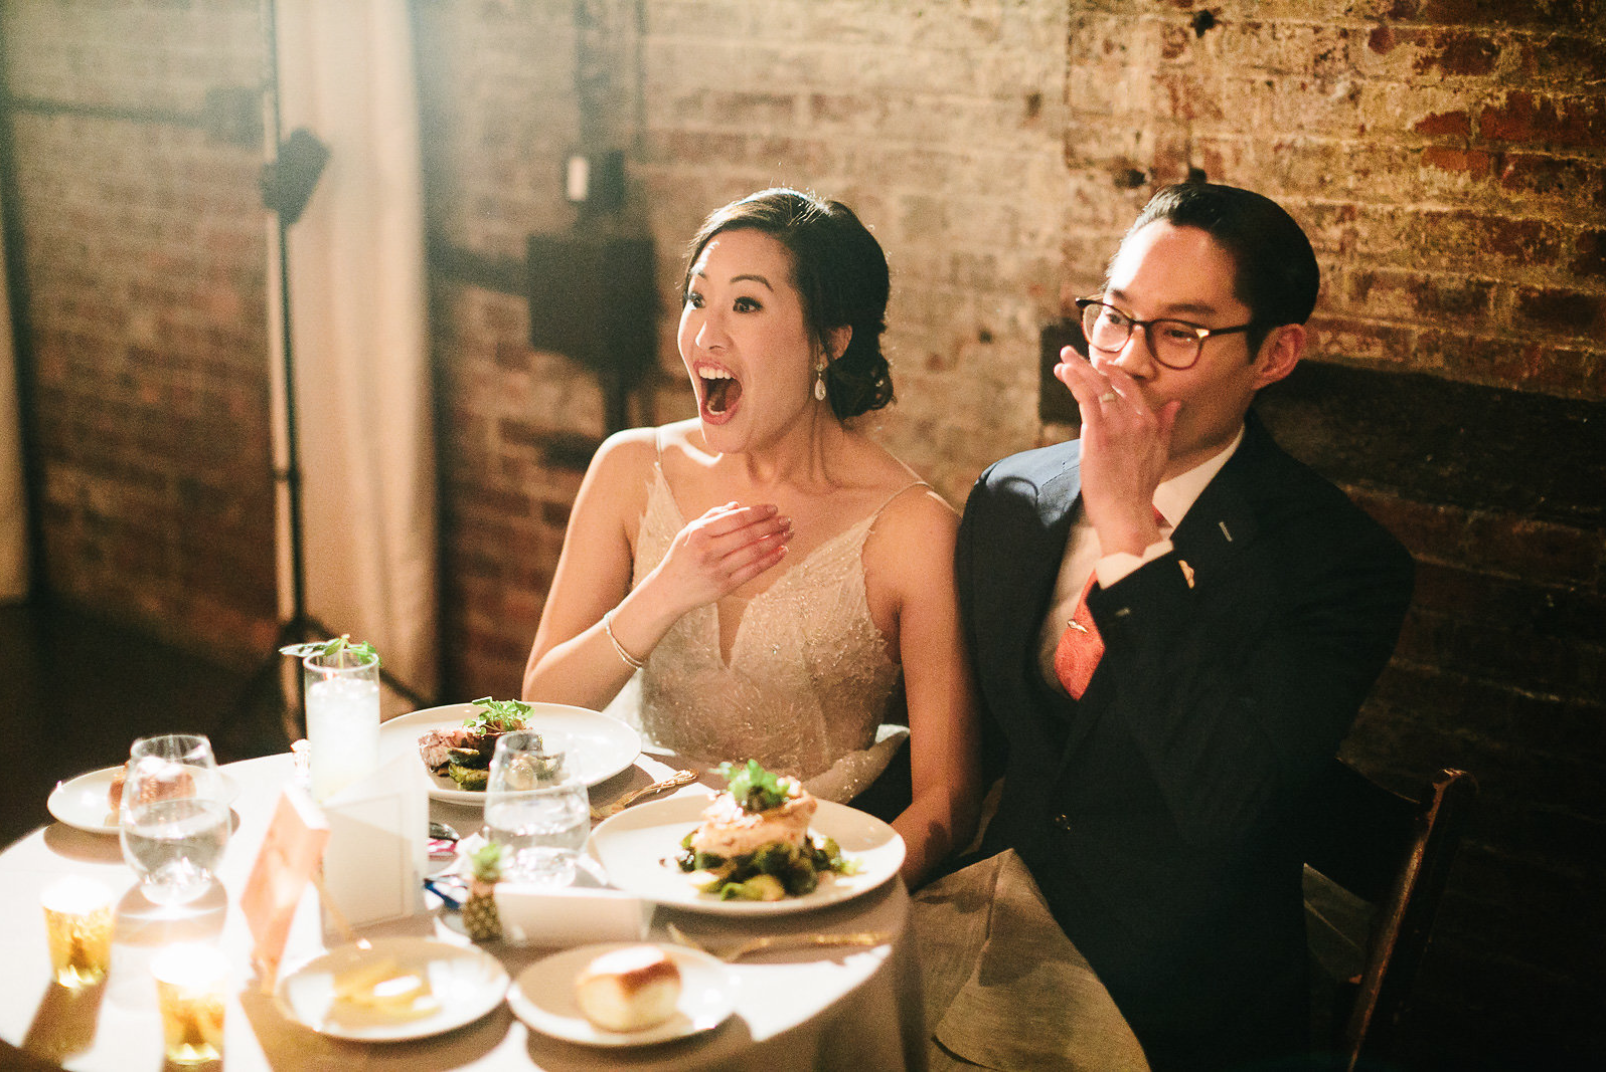 Photo Credit Chaz Cruz. Michelle and Henry's wedding catered by Ryan Brown Catering New York.